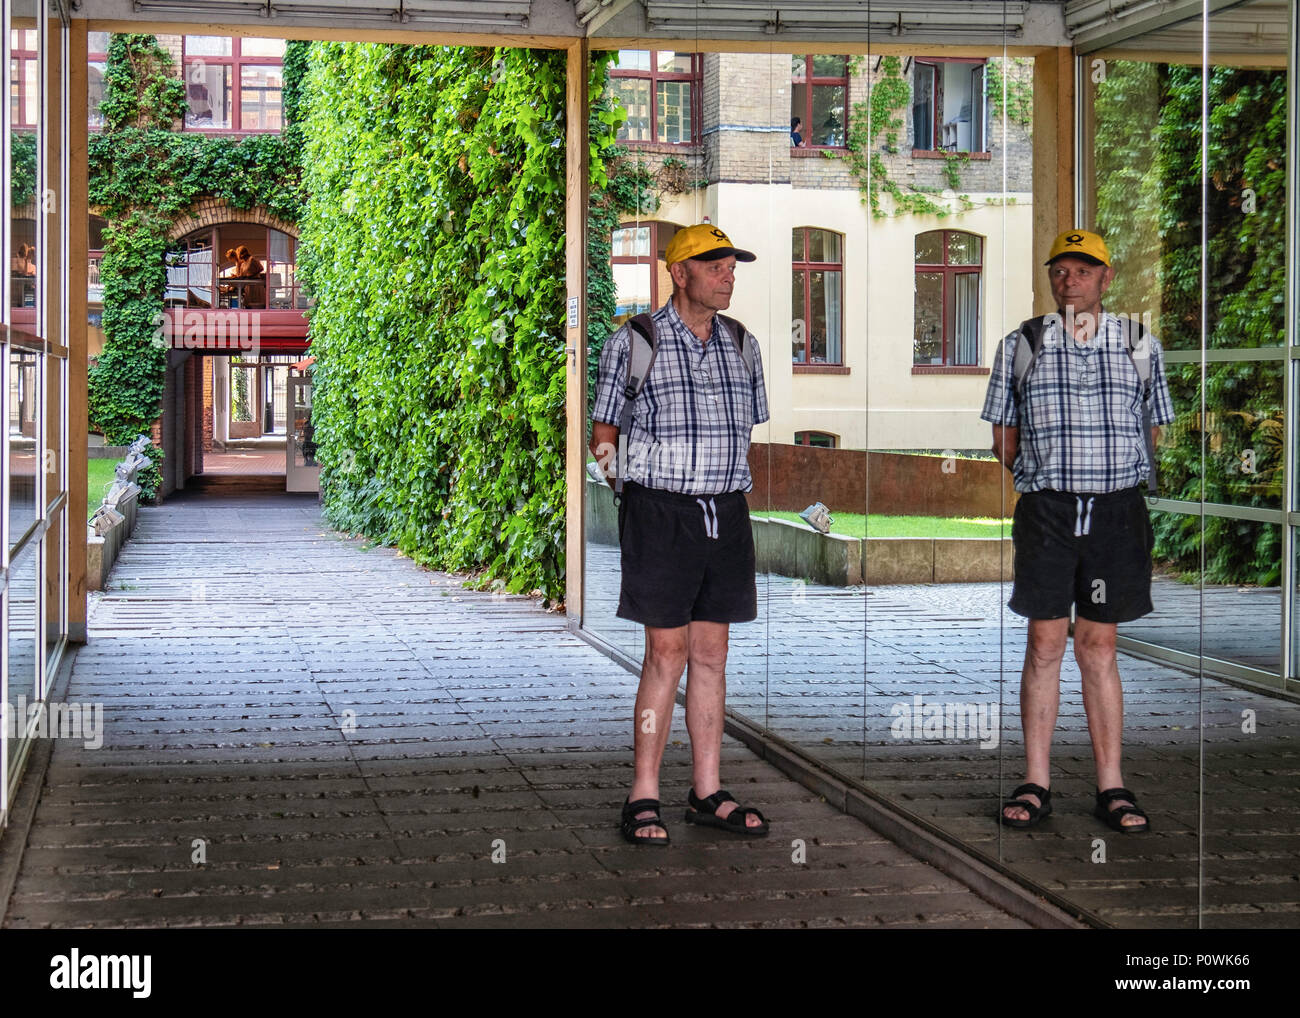 Berlin, Mitte Sophie-Gips-Höfe,Senior man in mirrored entrance of Historic 19th century former factory building courtyard - Stock Image